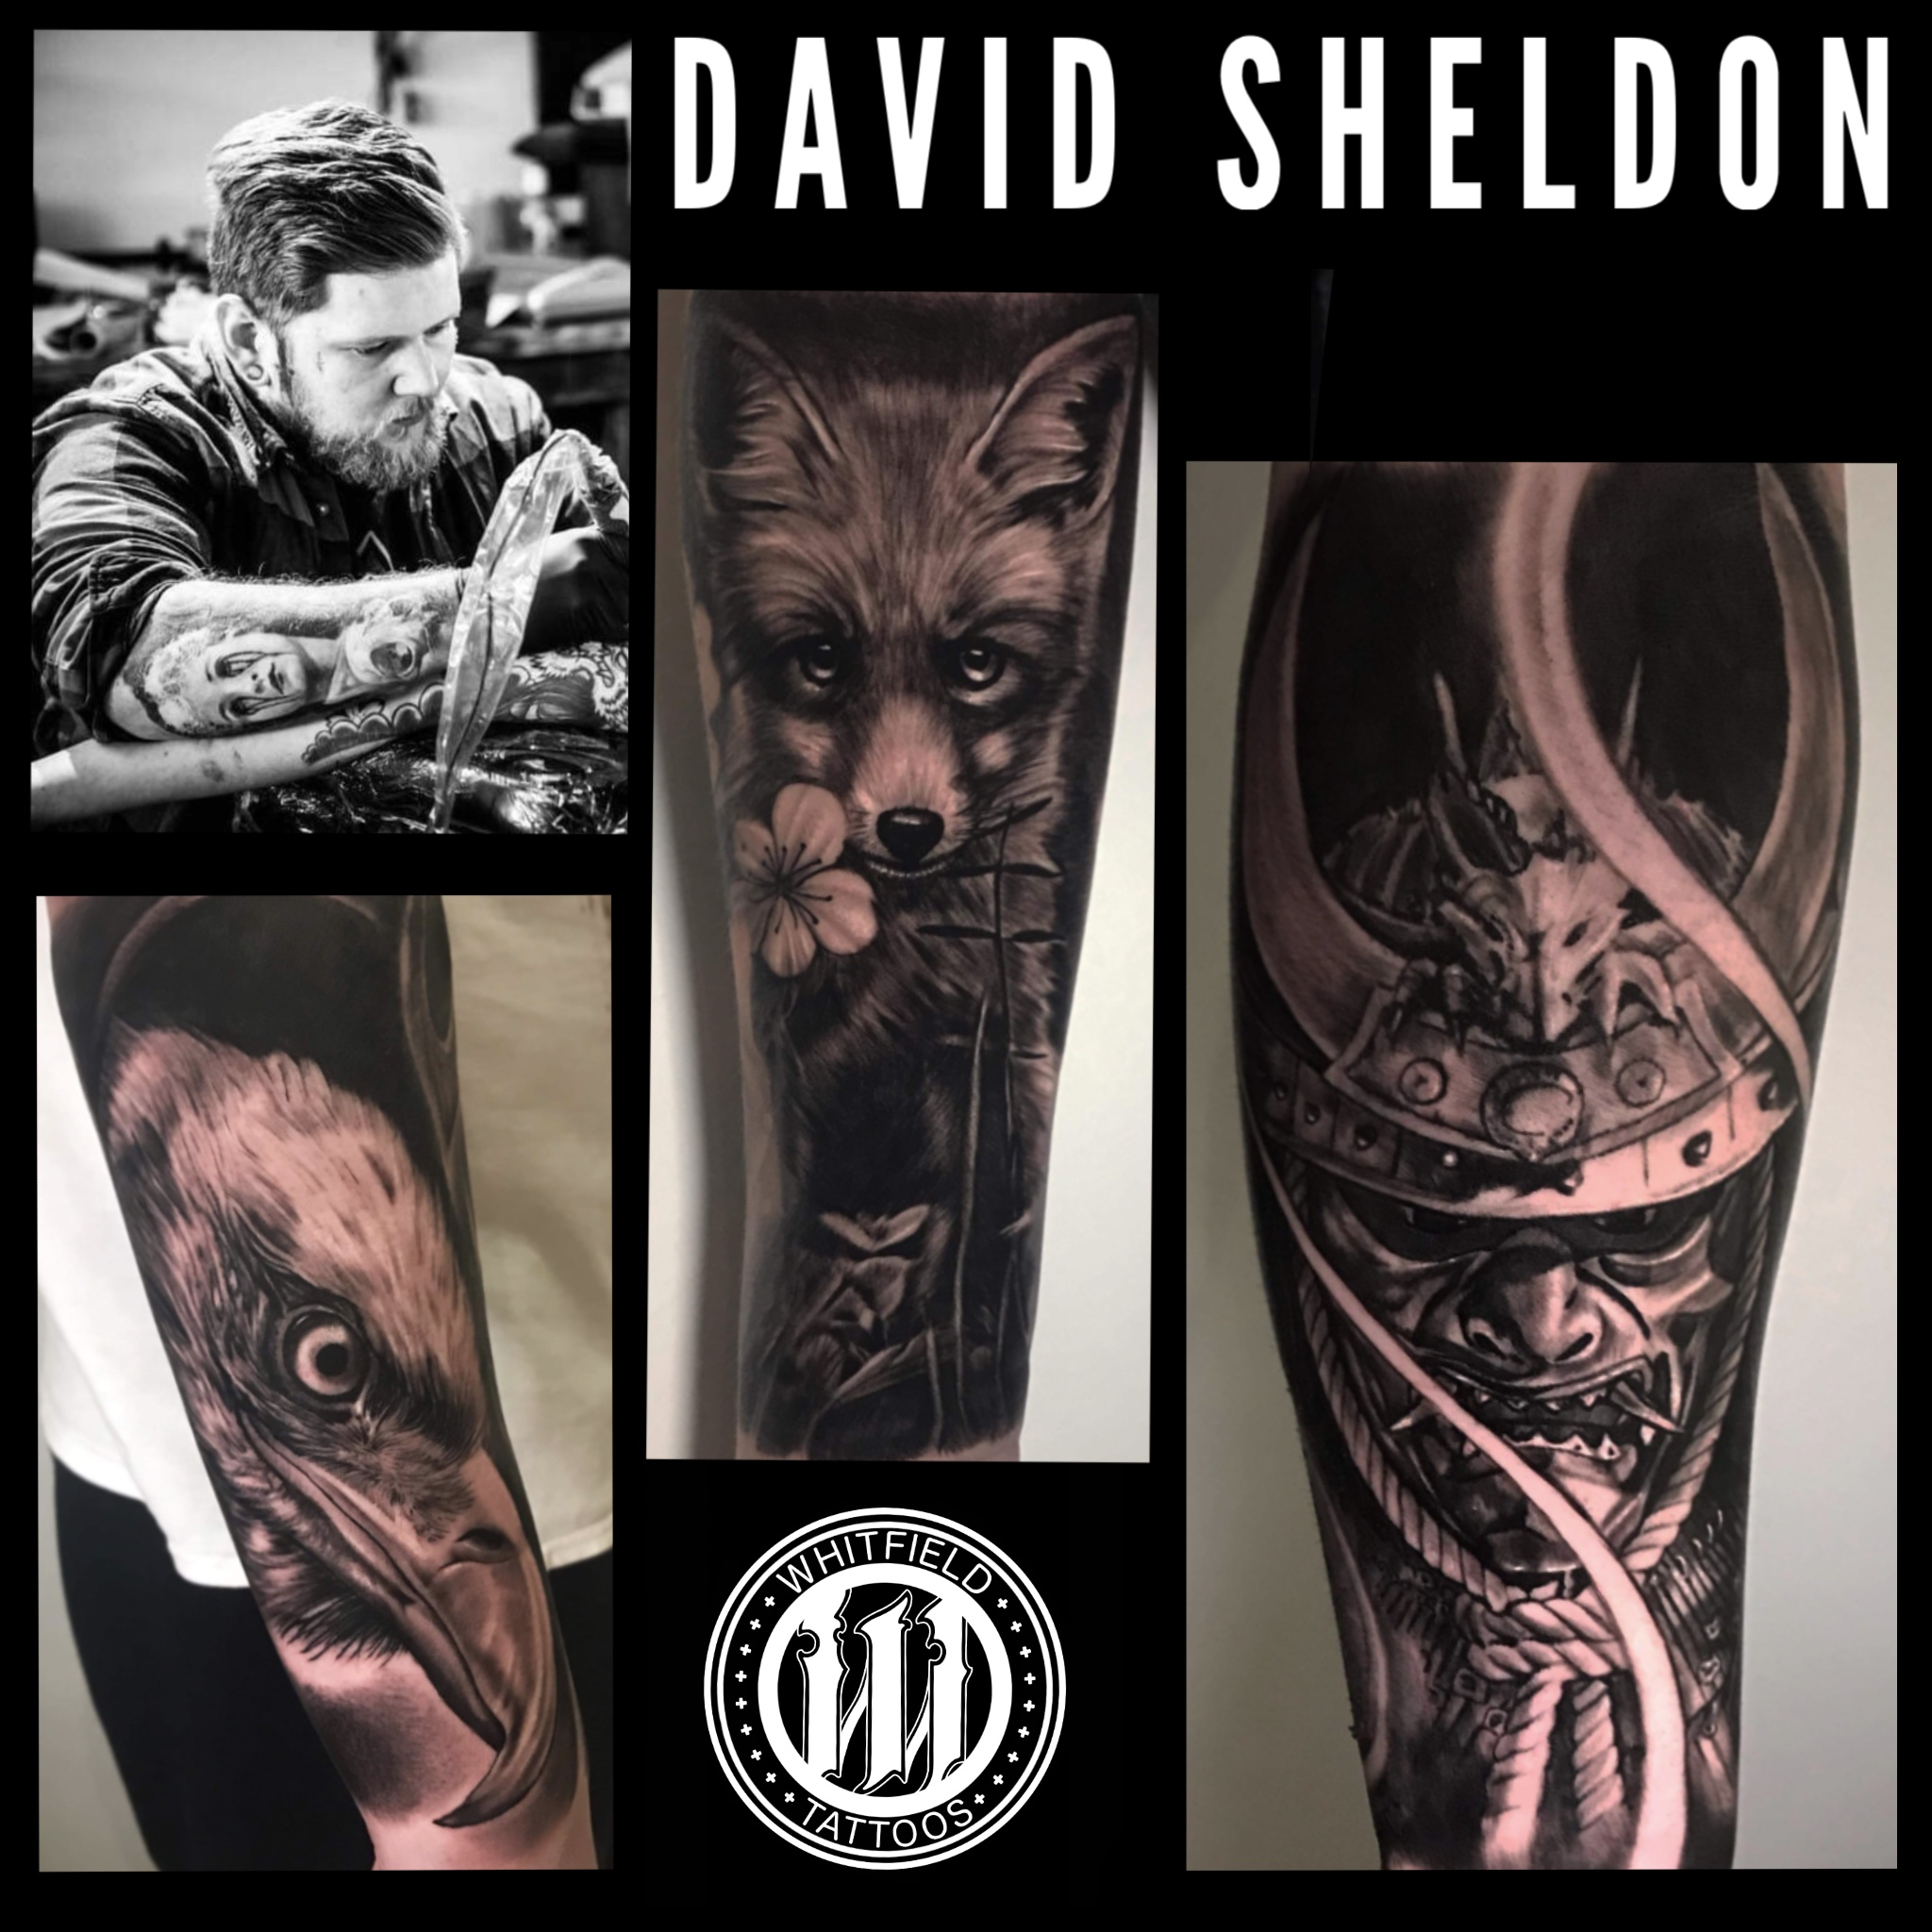 David Sheldon - Dave specializes in black and grey realism